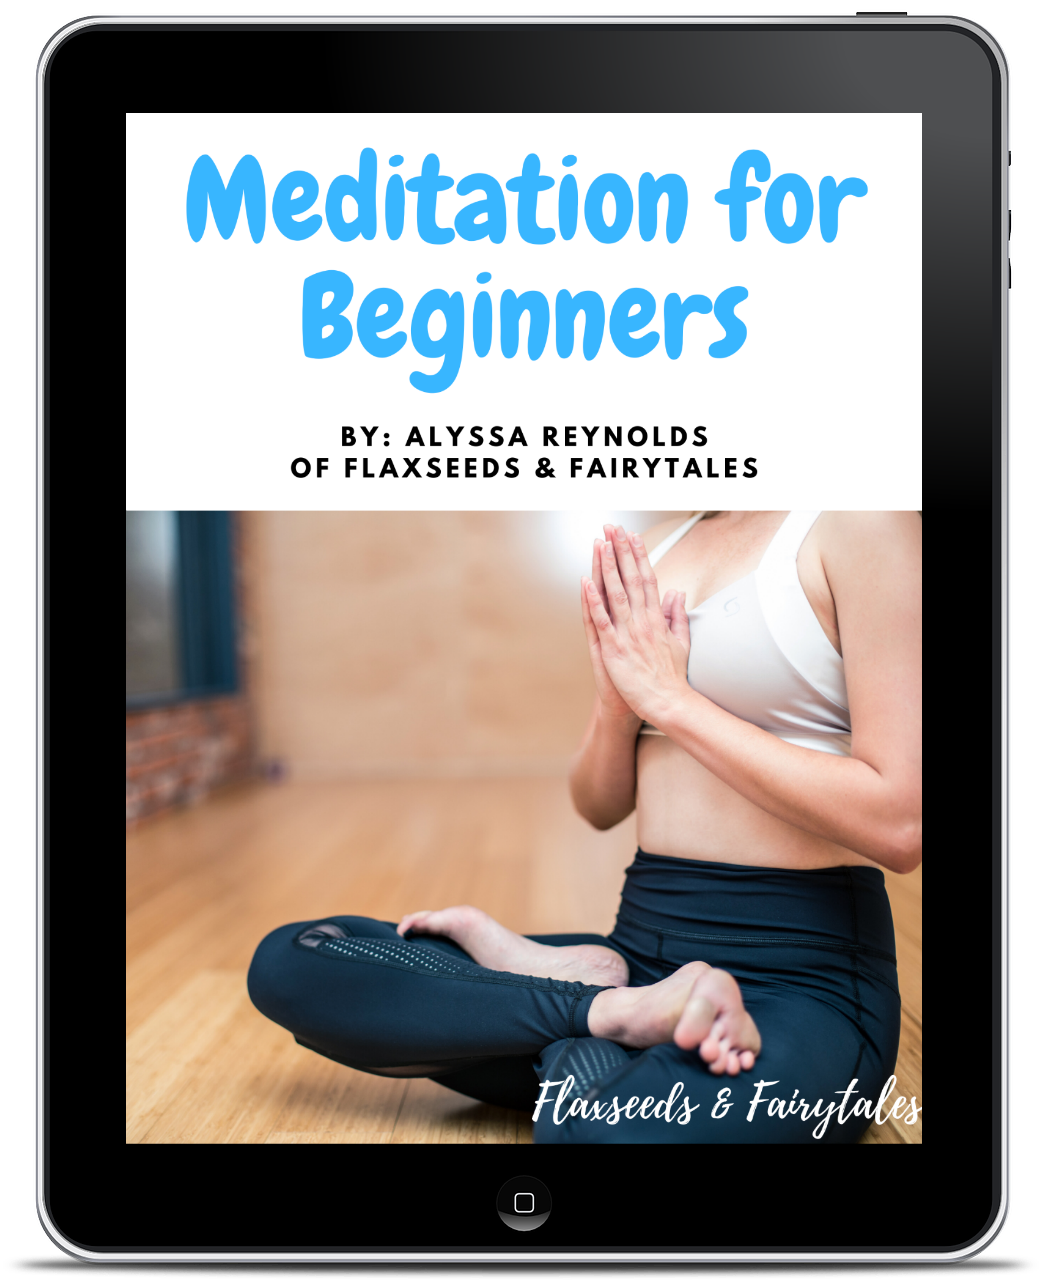 Meditation for beginners to help with weight loss